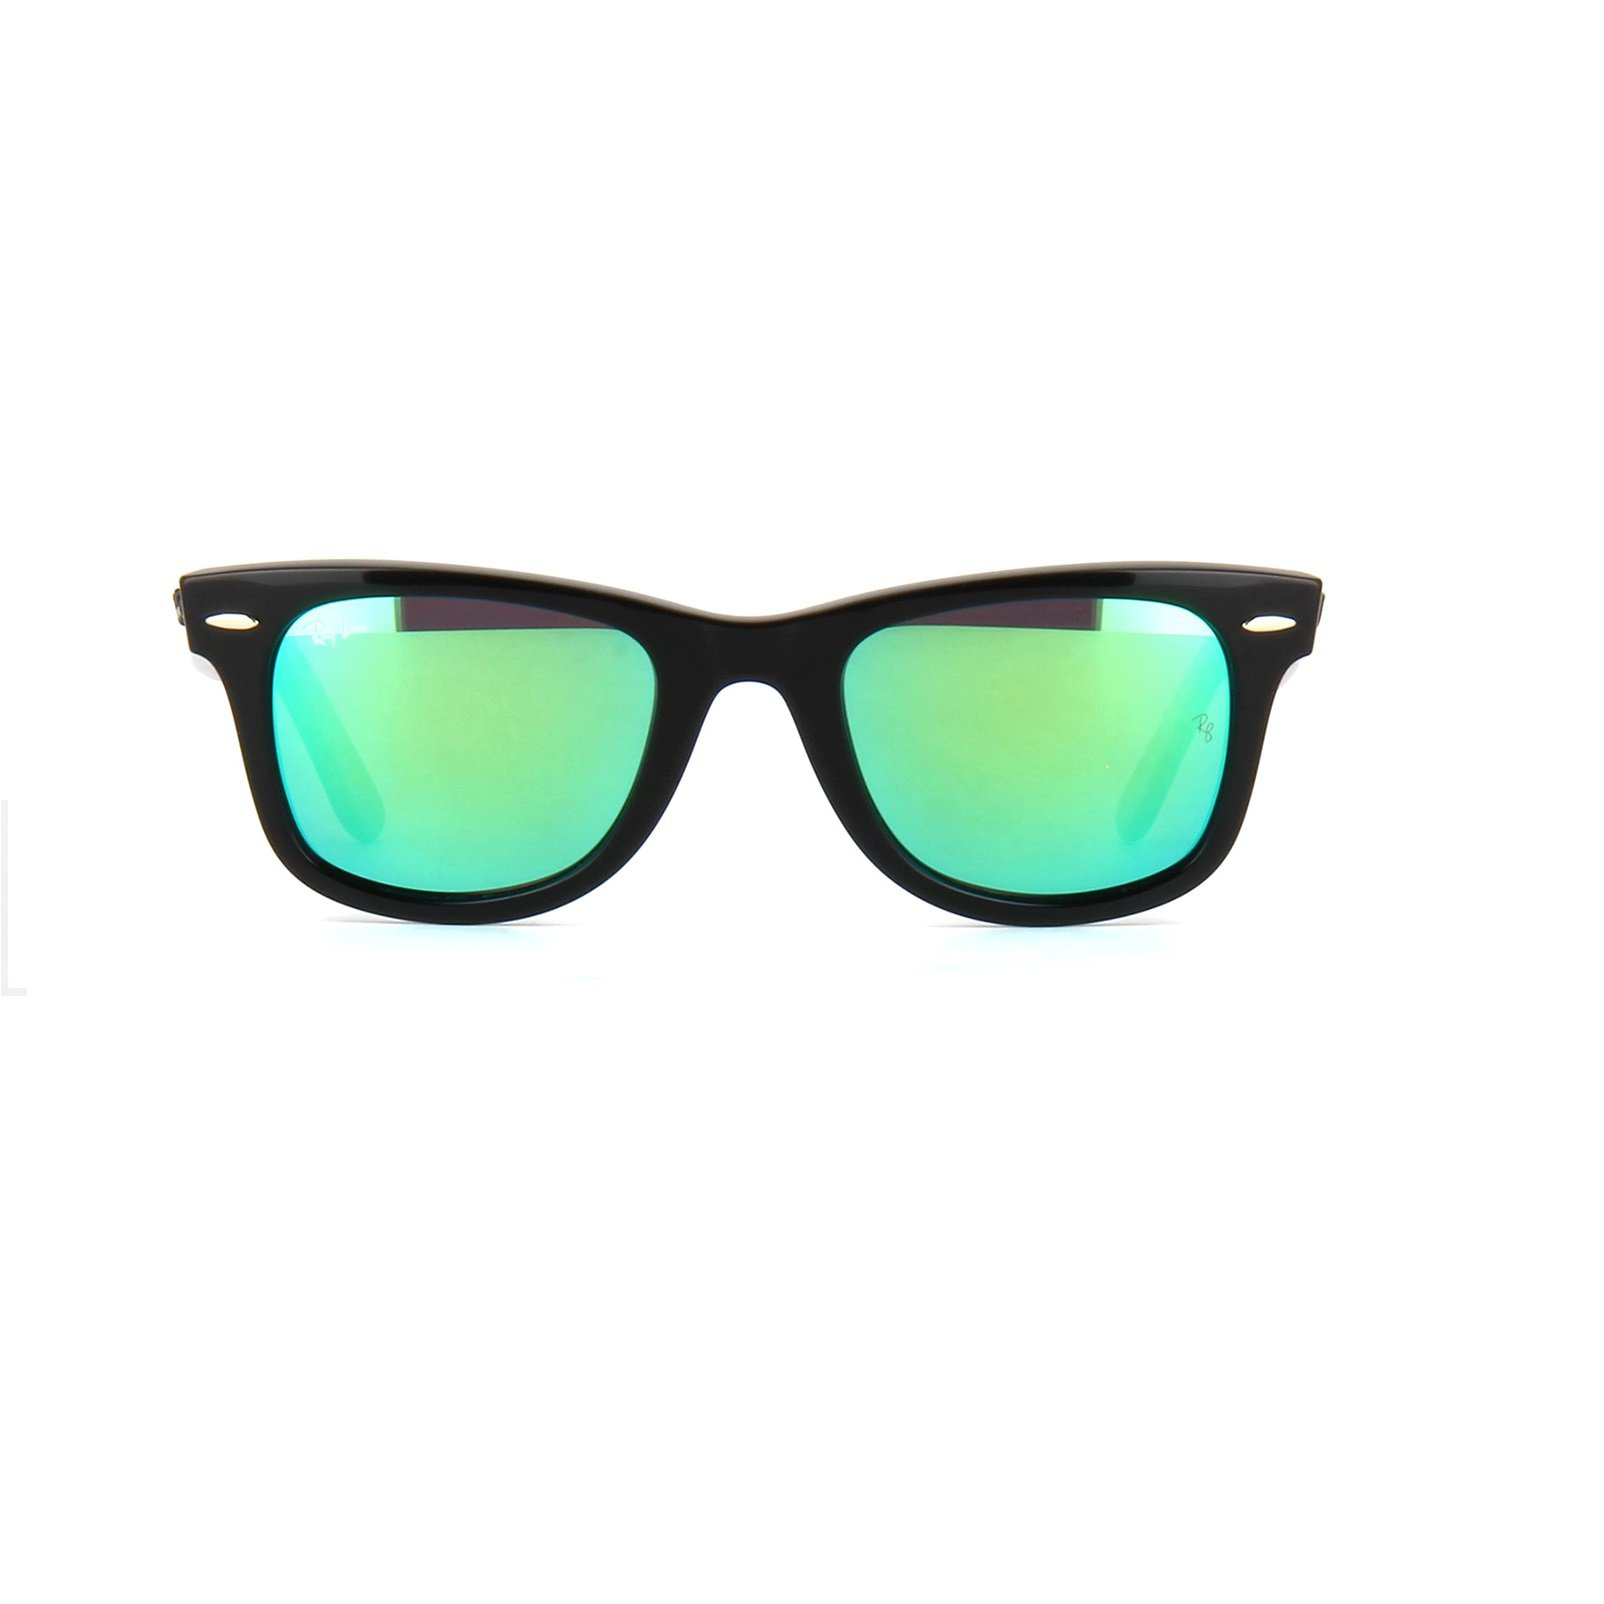 Ray-Ban Wayfarer Black and Green